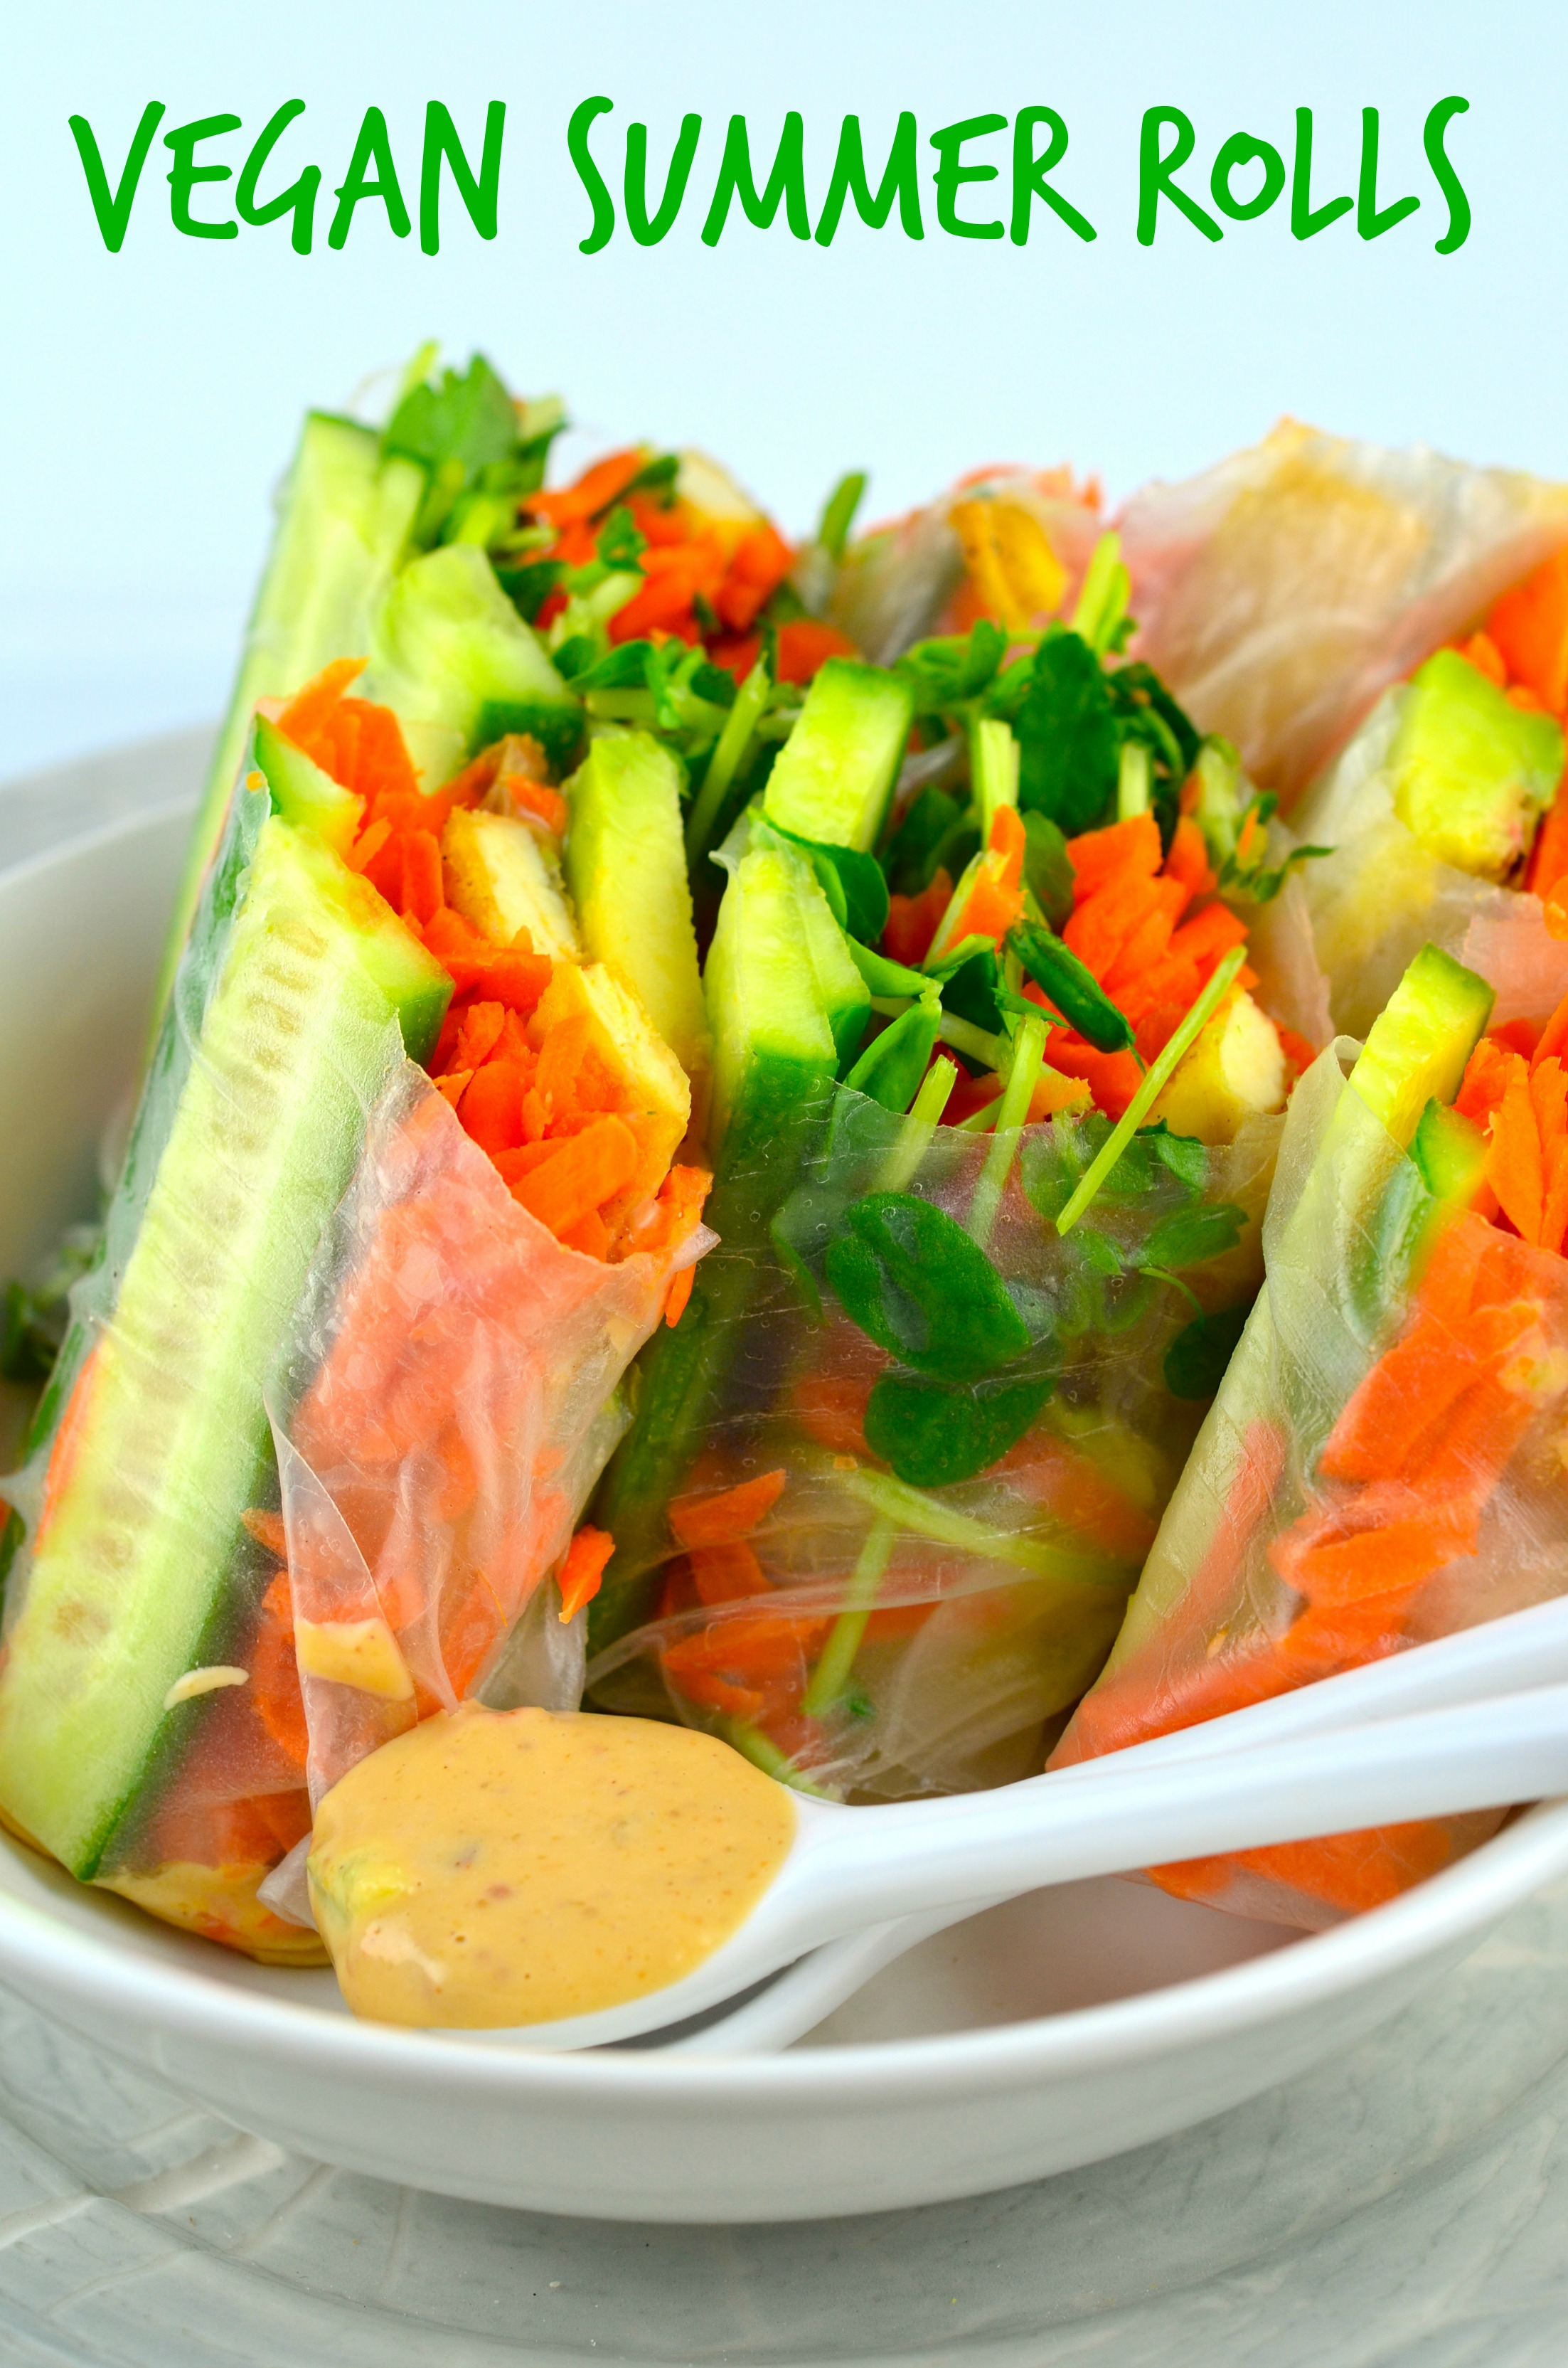 Vegan Summer Rolls With Peanut Coconut Dipping Sauce